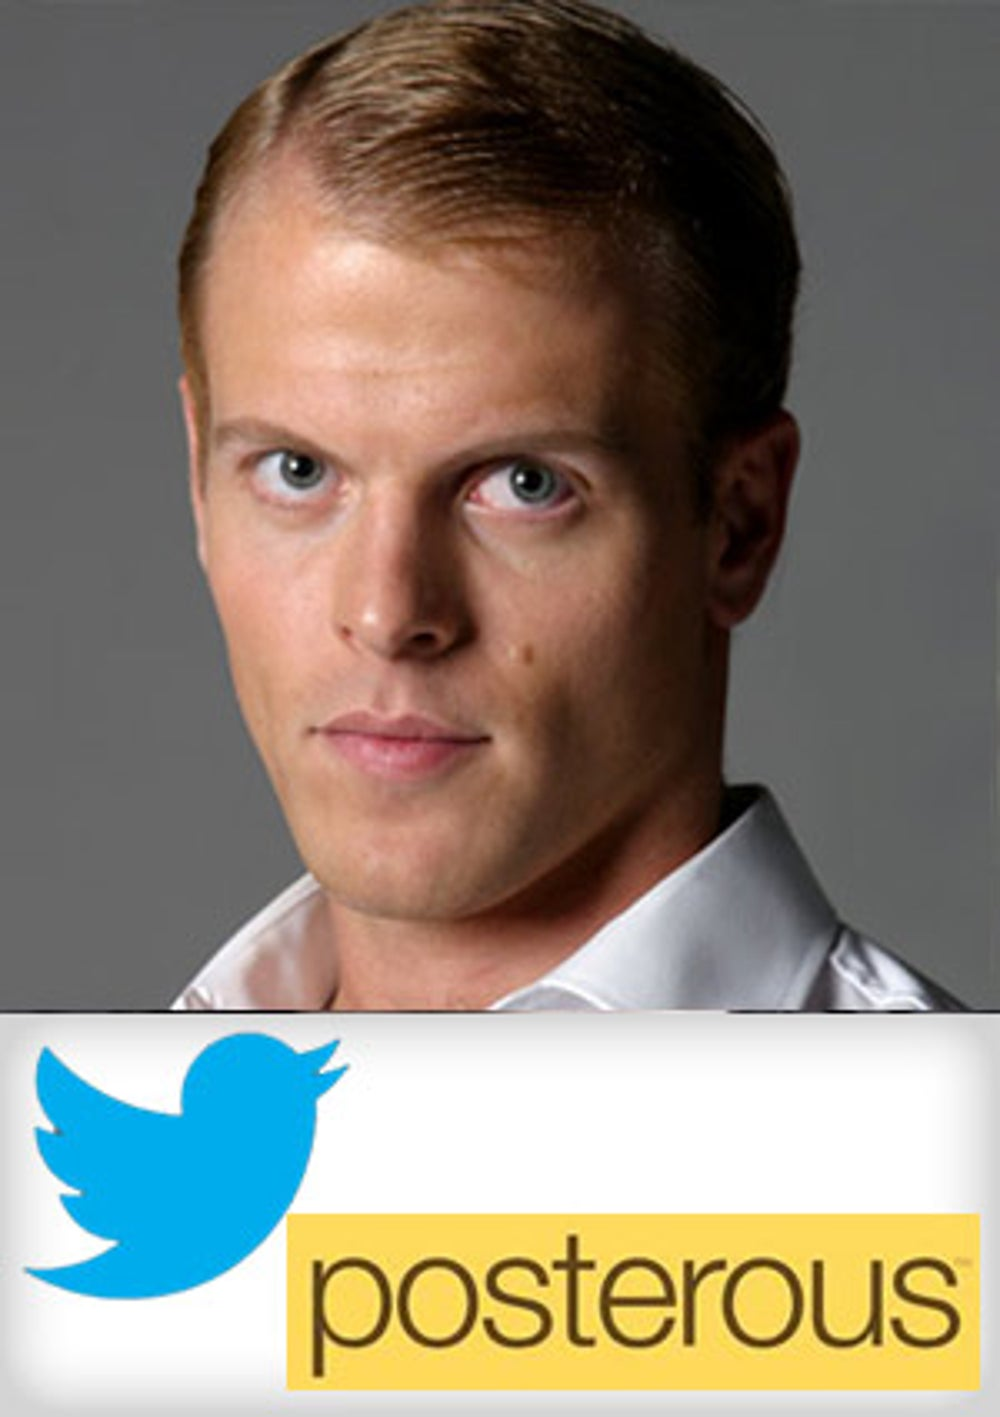 Timothy Ferriss, investments: Twitter and Posterous